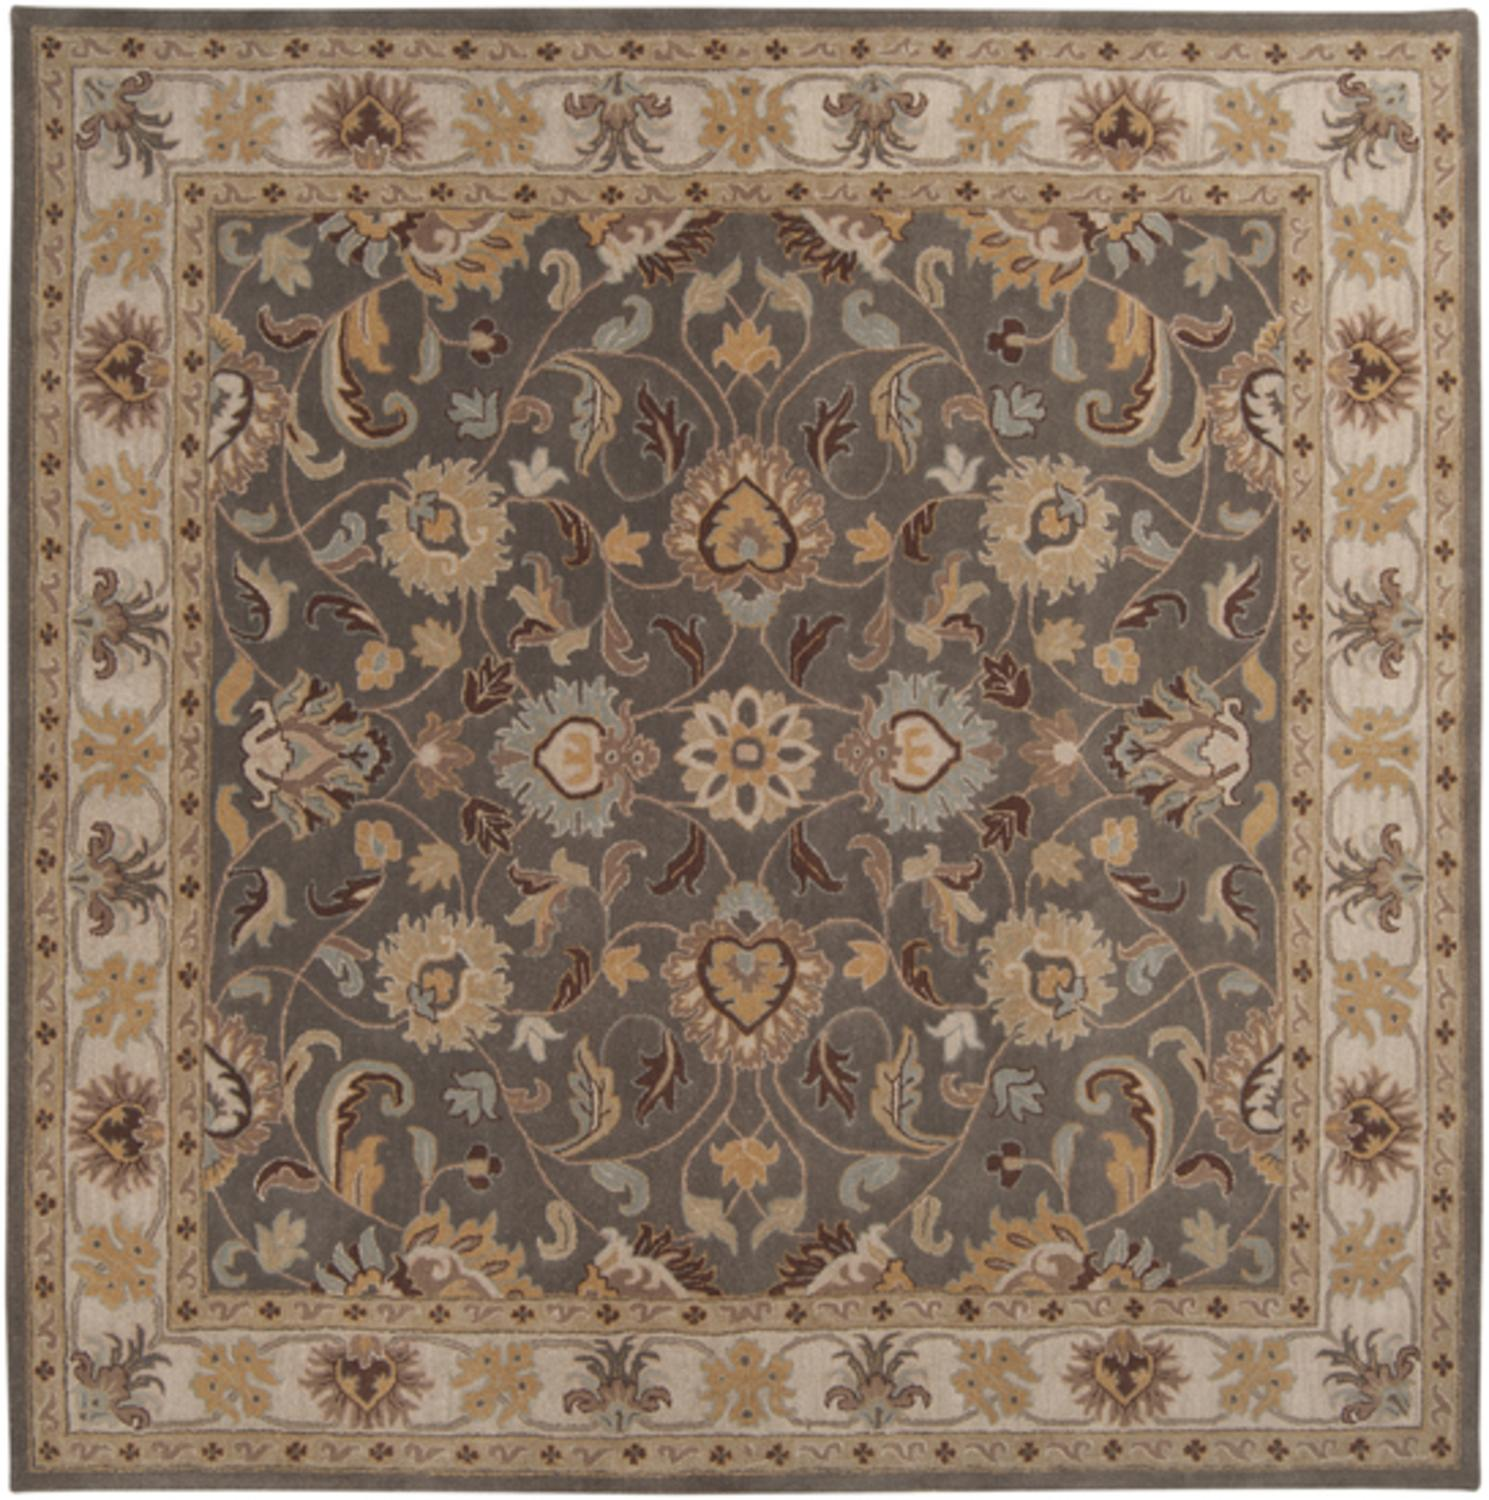 4' x 4' Augustus Heather Gray and Taupe Hand Tufted Wool Square Area Throw Rug